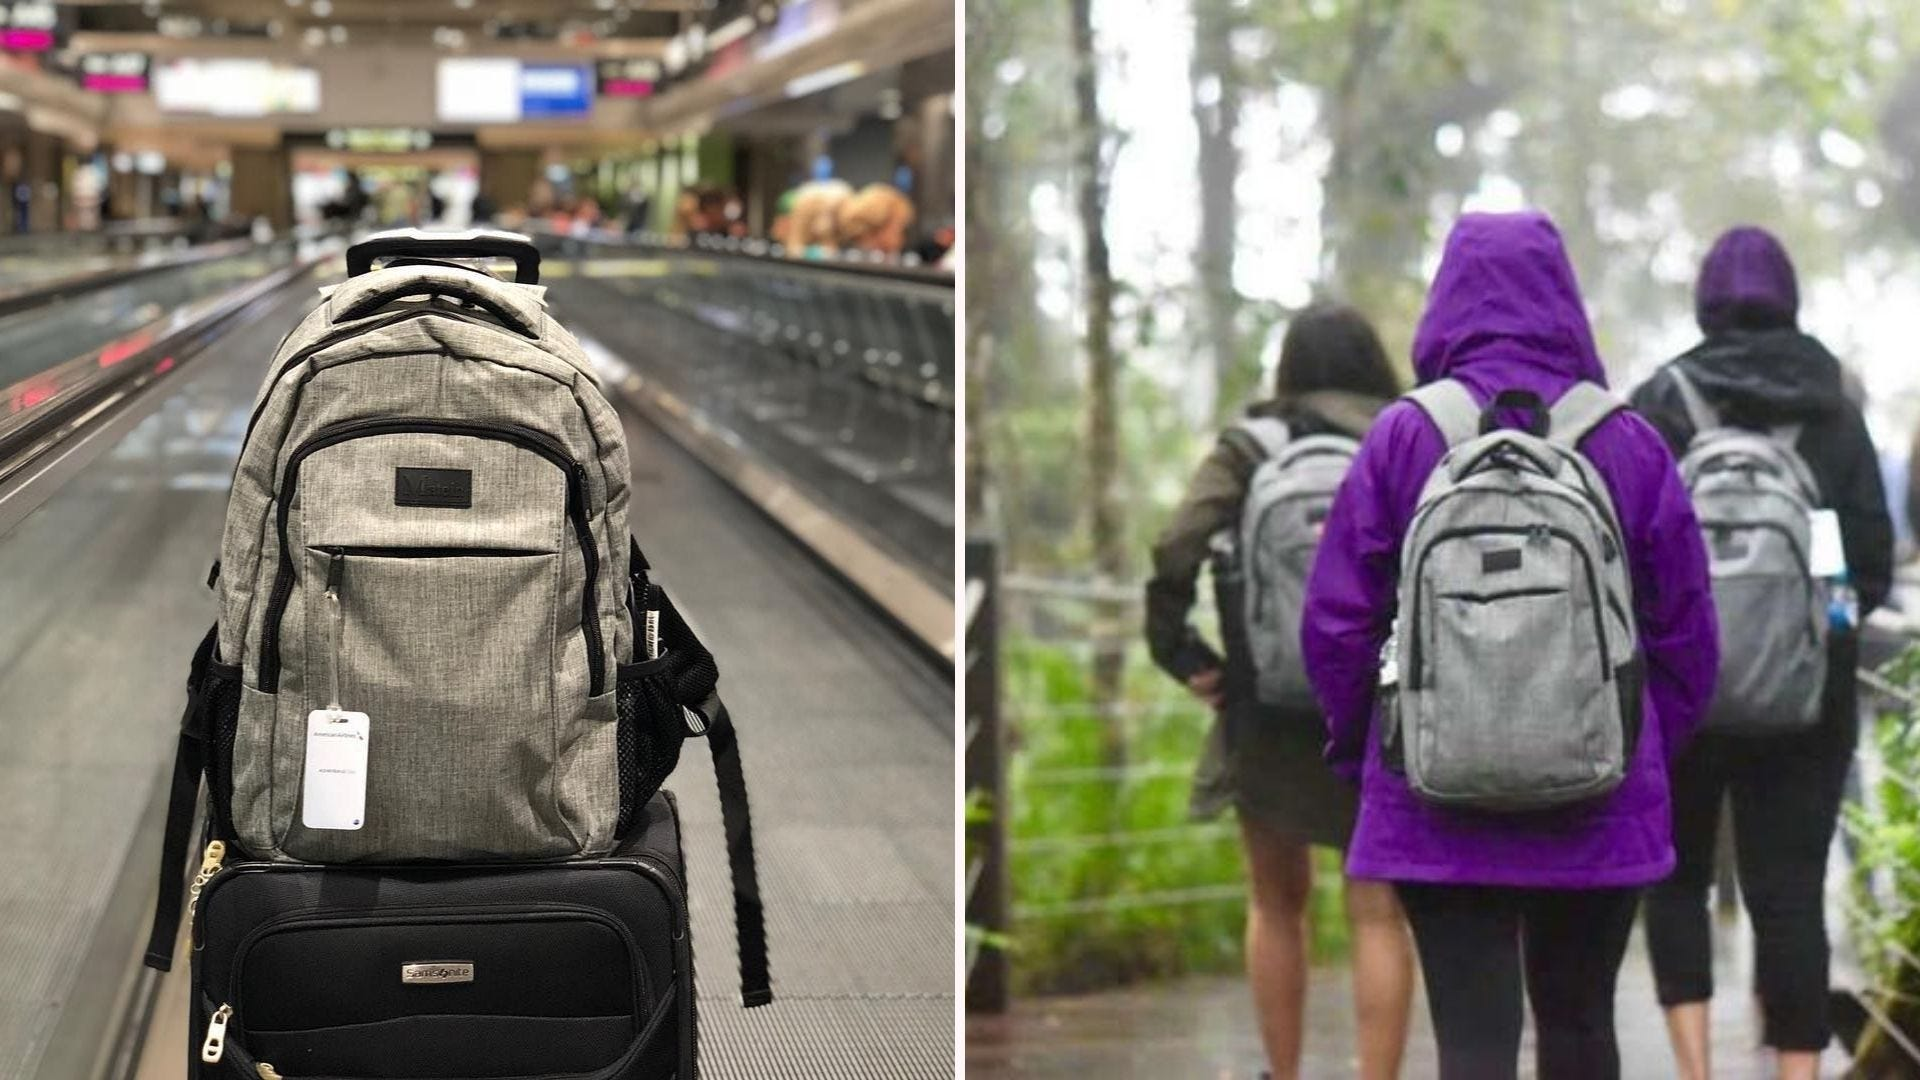 A taupe backpack on top of a suitcase; a woman in a purple hoodie carrying a gray backpack